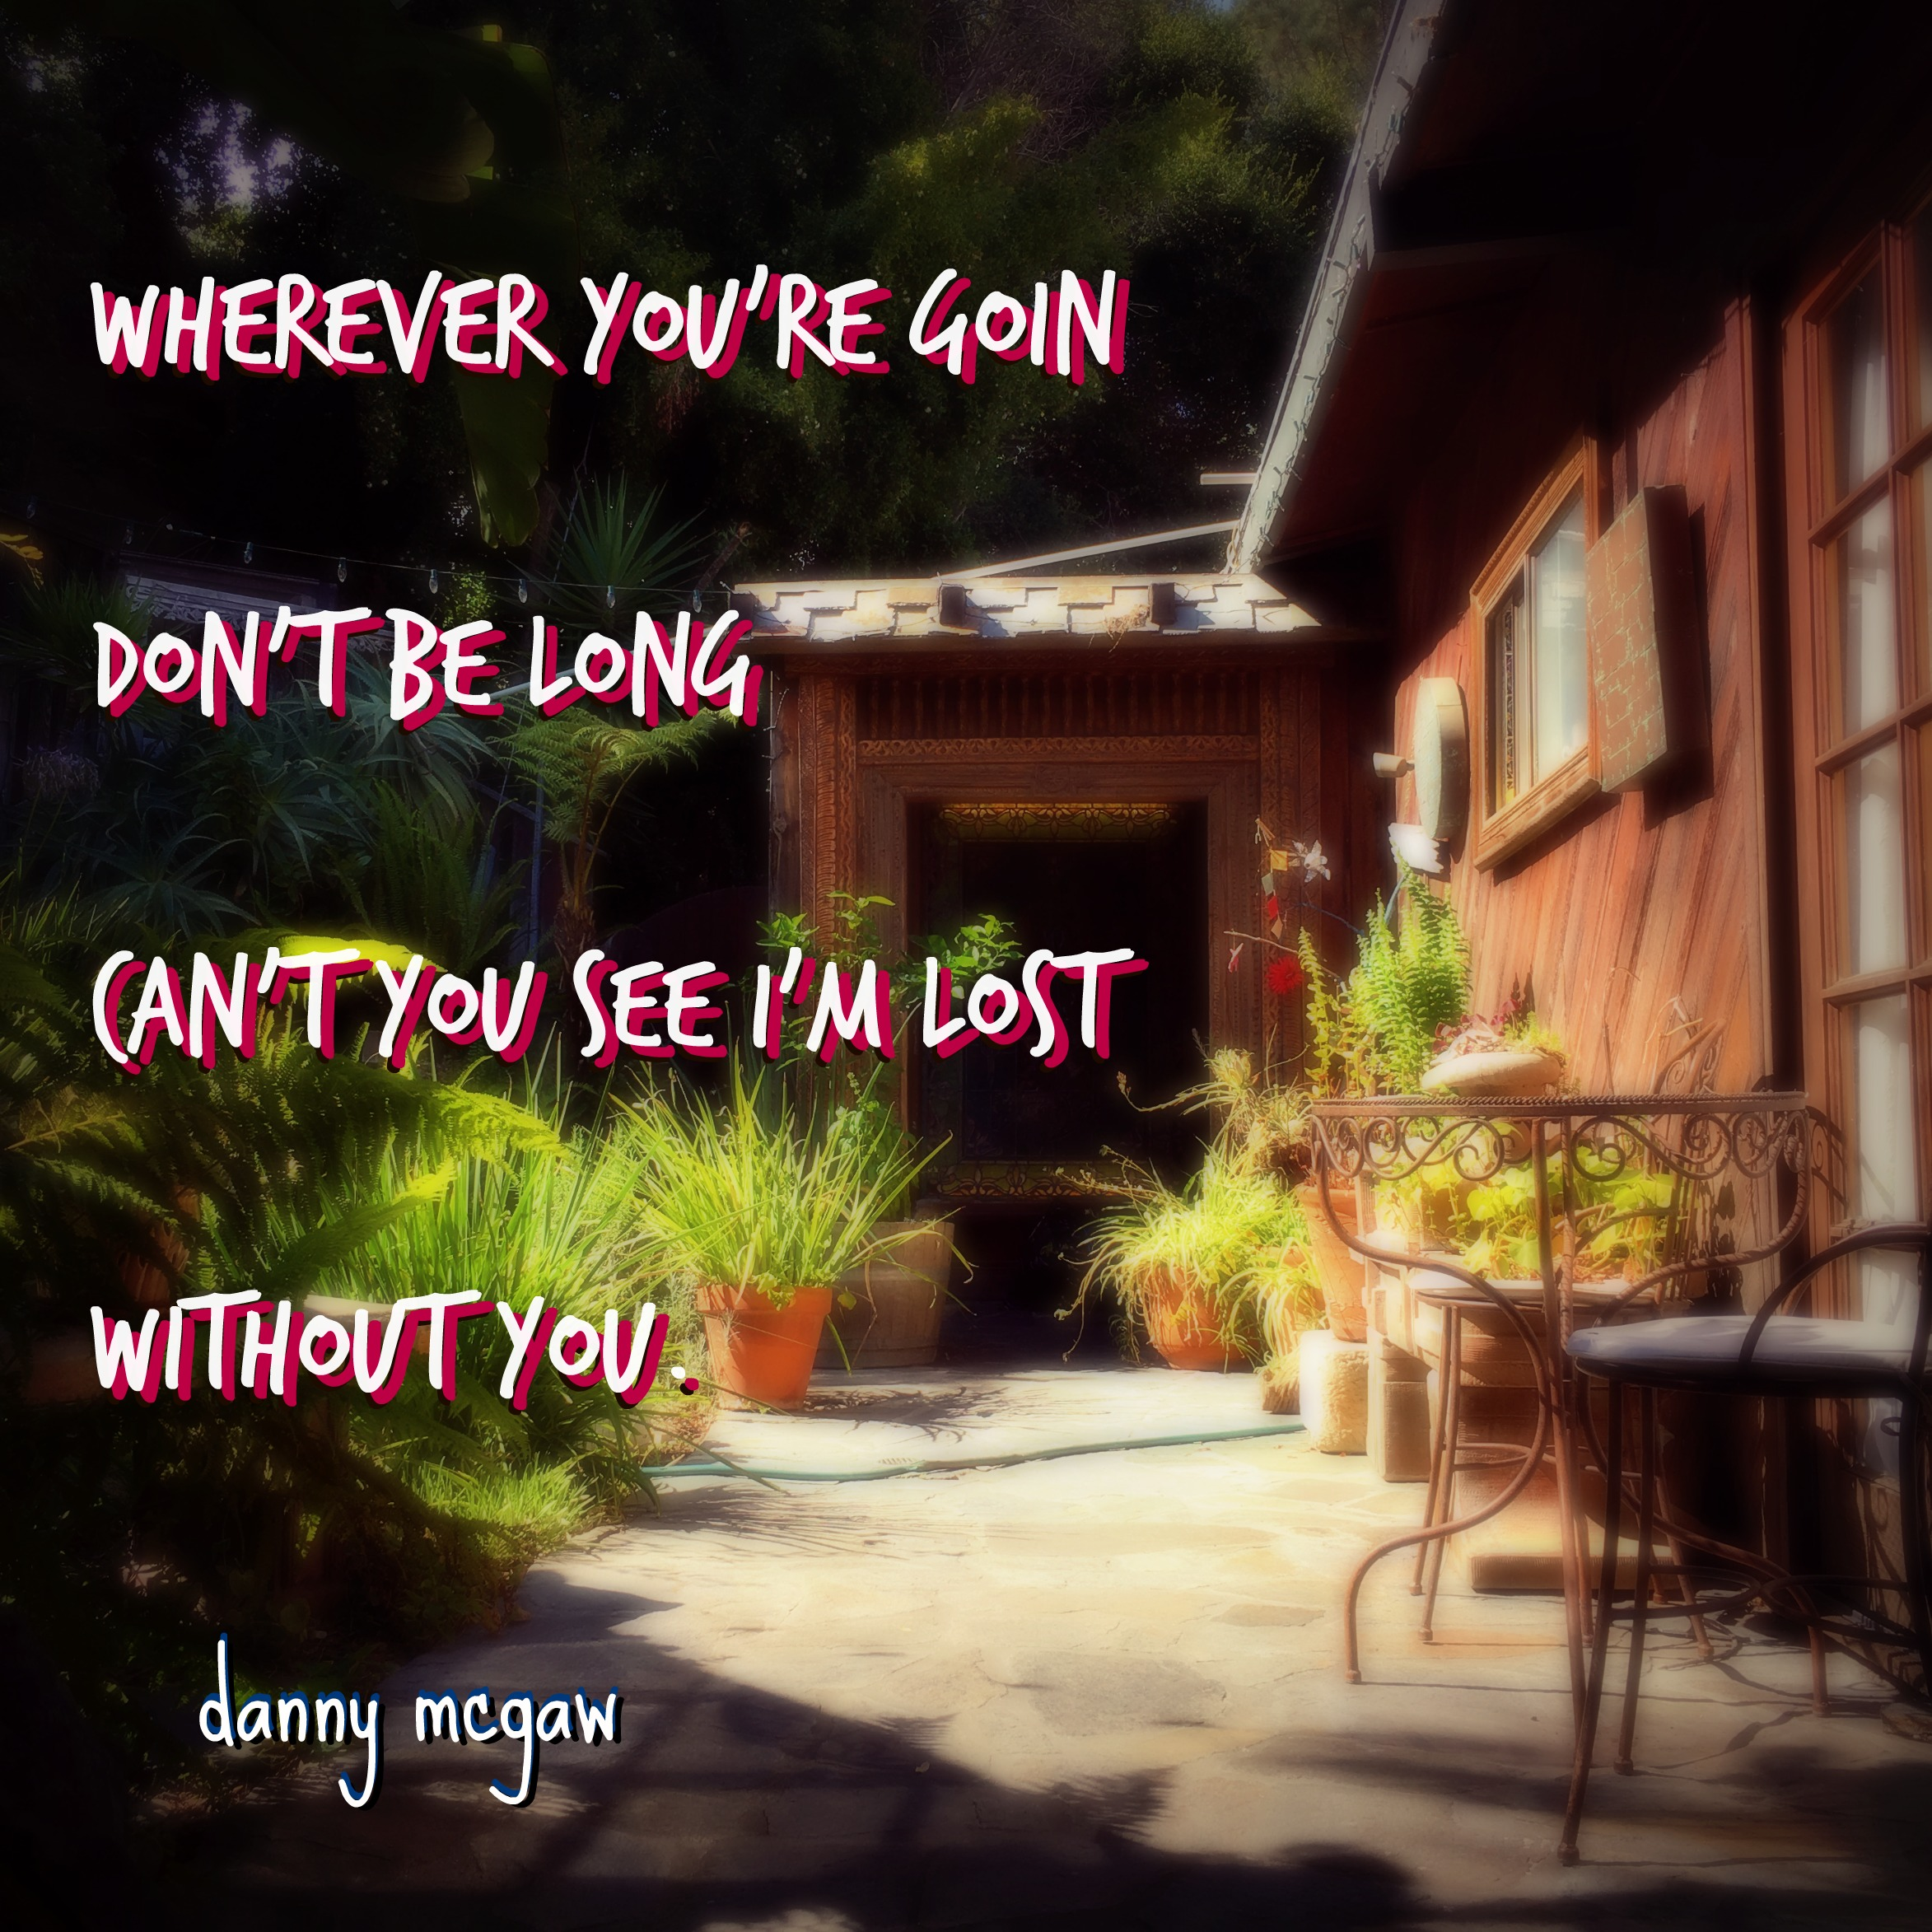 lost without you image.jpg